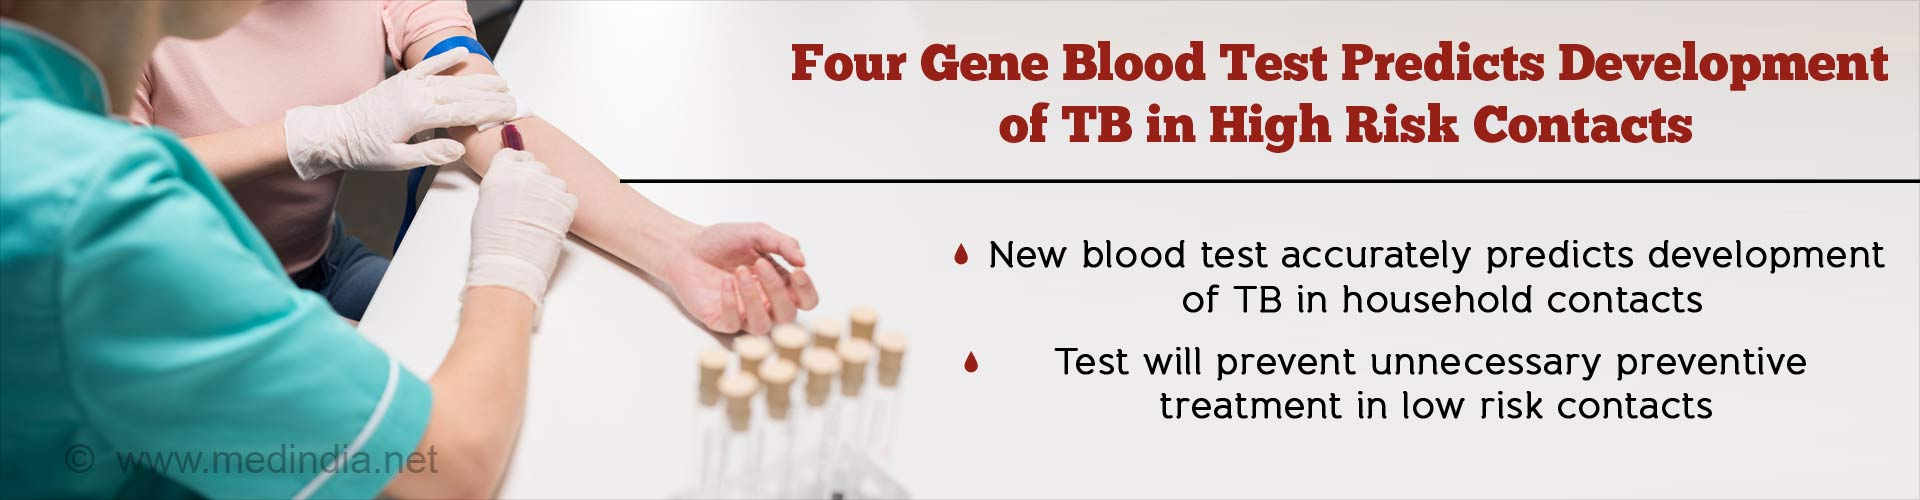 Novel Blood Test Predicts Risk of Tuberculosis (TB) Two Years Before Onset